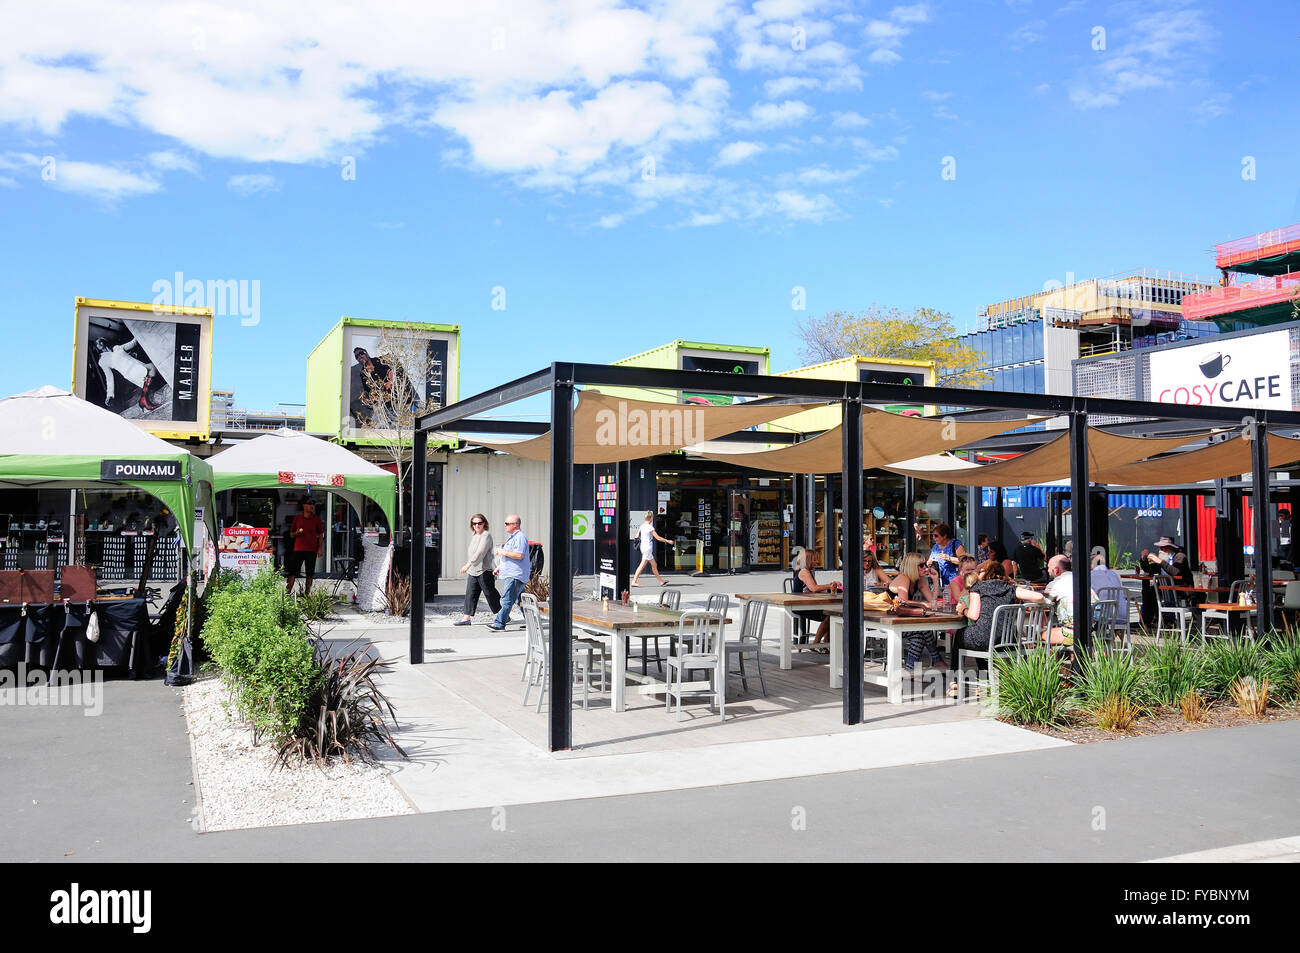 Cosy Cafe at Re:START Container Mall, Cashel Street, Christchurch, Canterbury, New Zealand - Stock Image